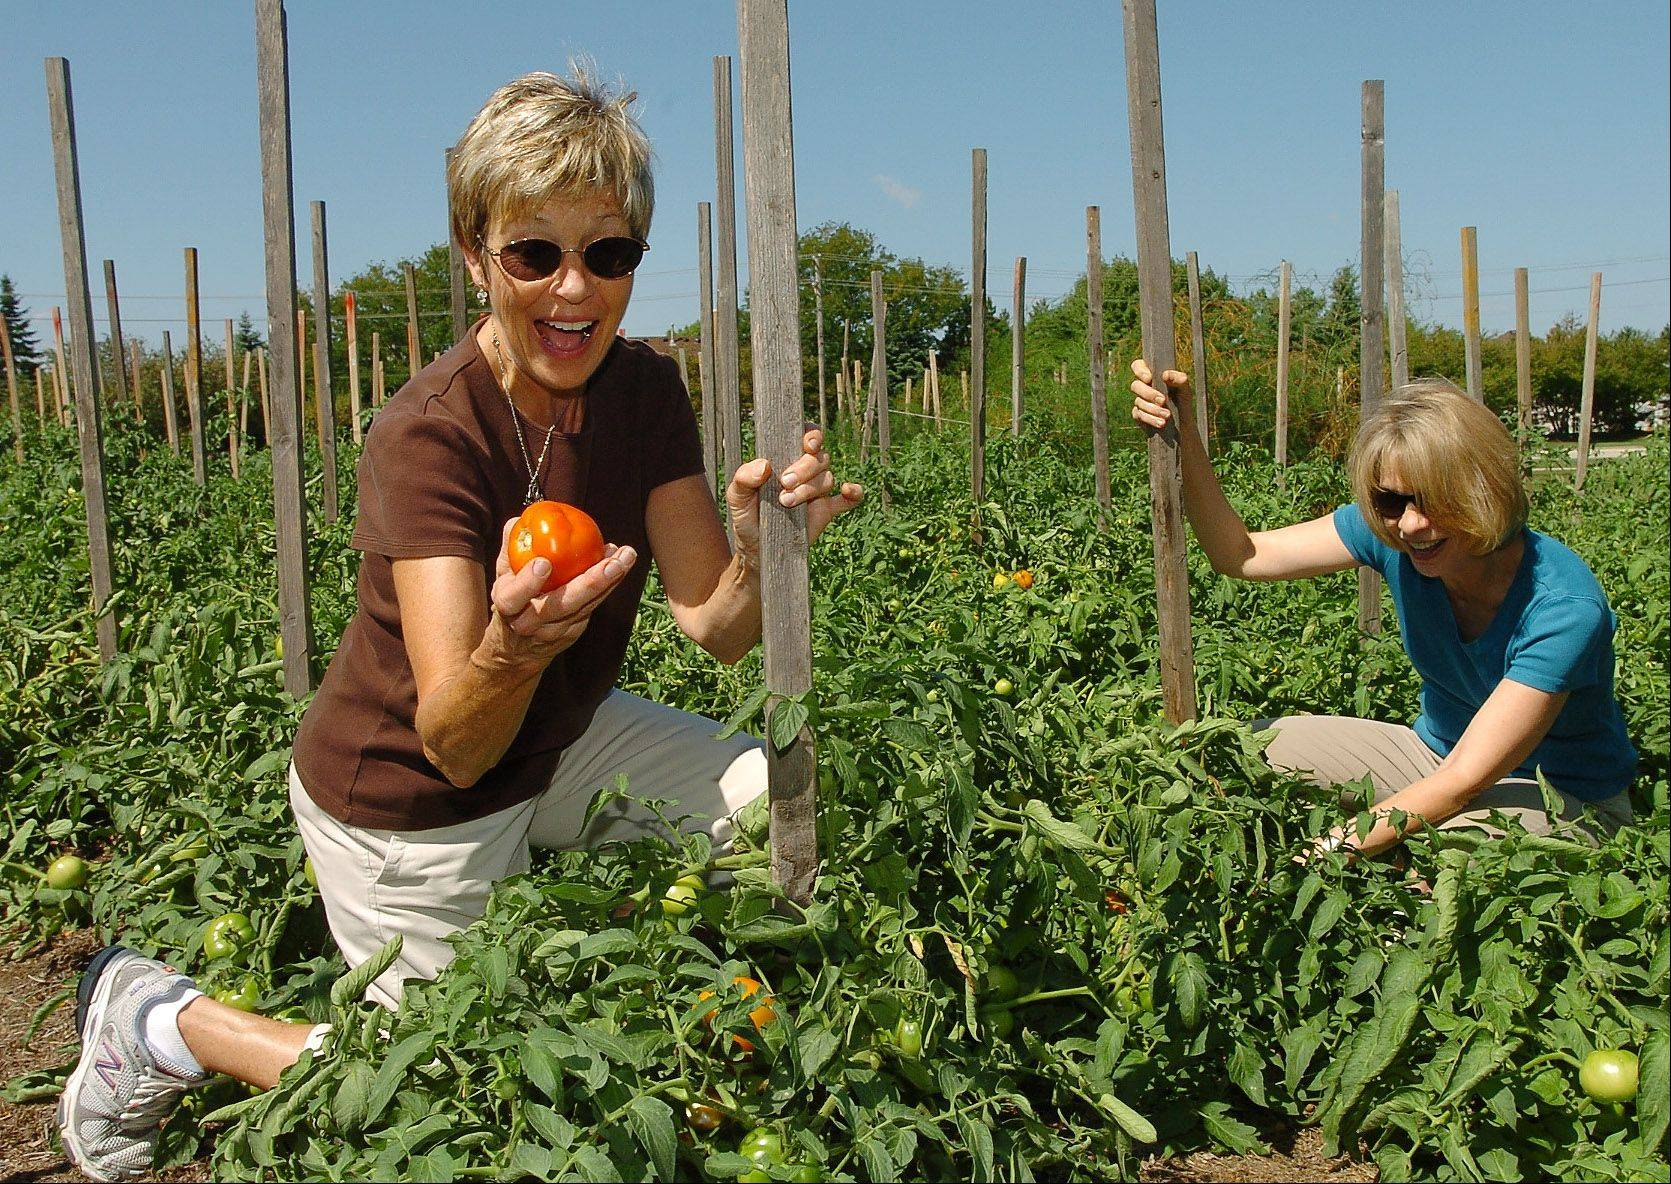 Nancy Erickson, left, finds a beauty, while picking tomatoes with Tina Lawrenz in the garden behind Covenant Church in Schaumburg.